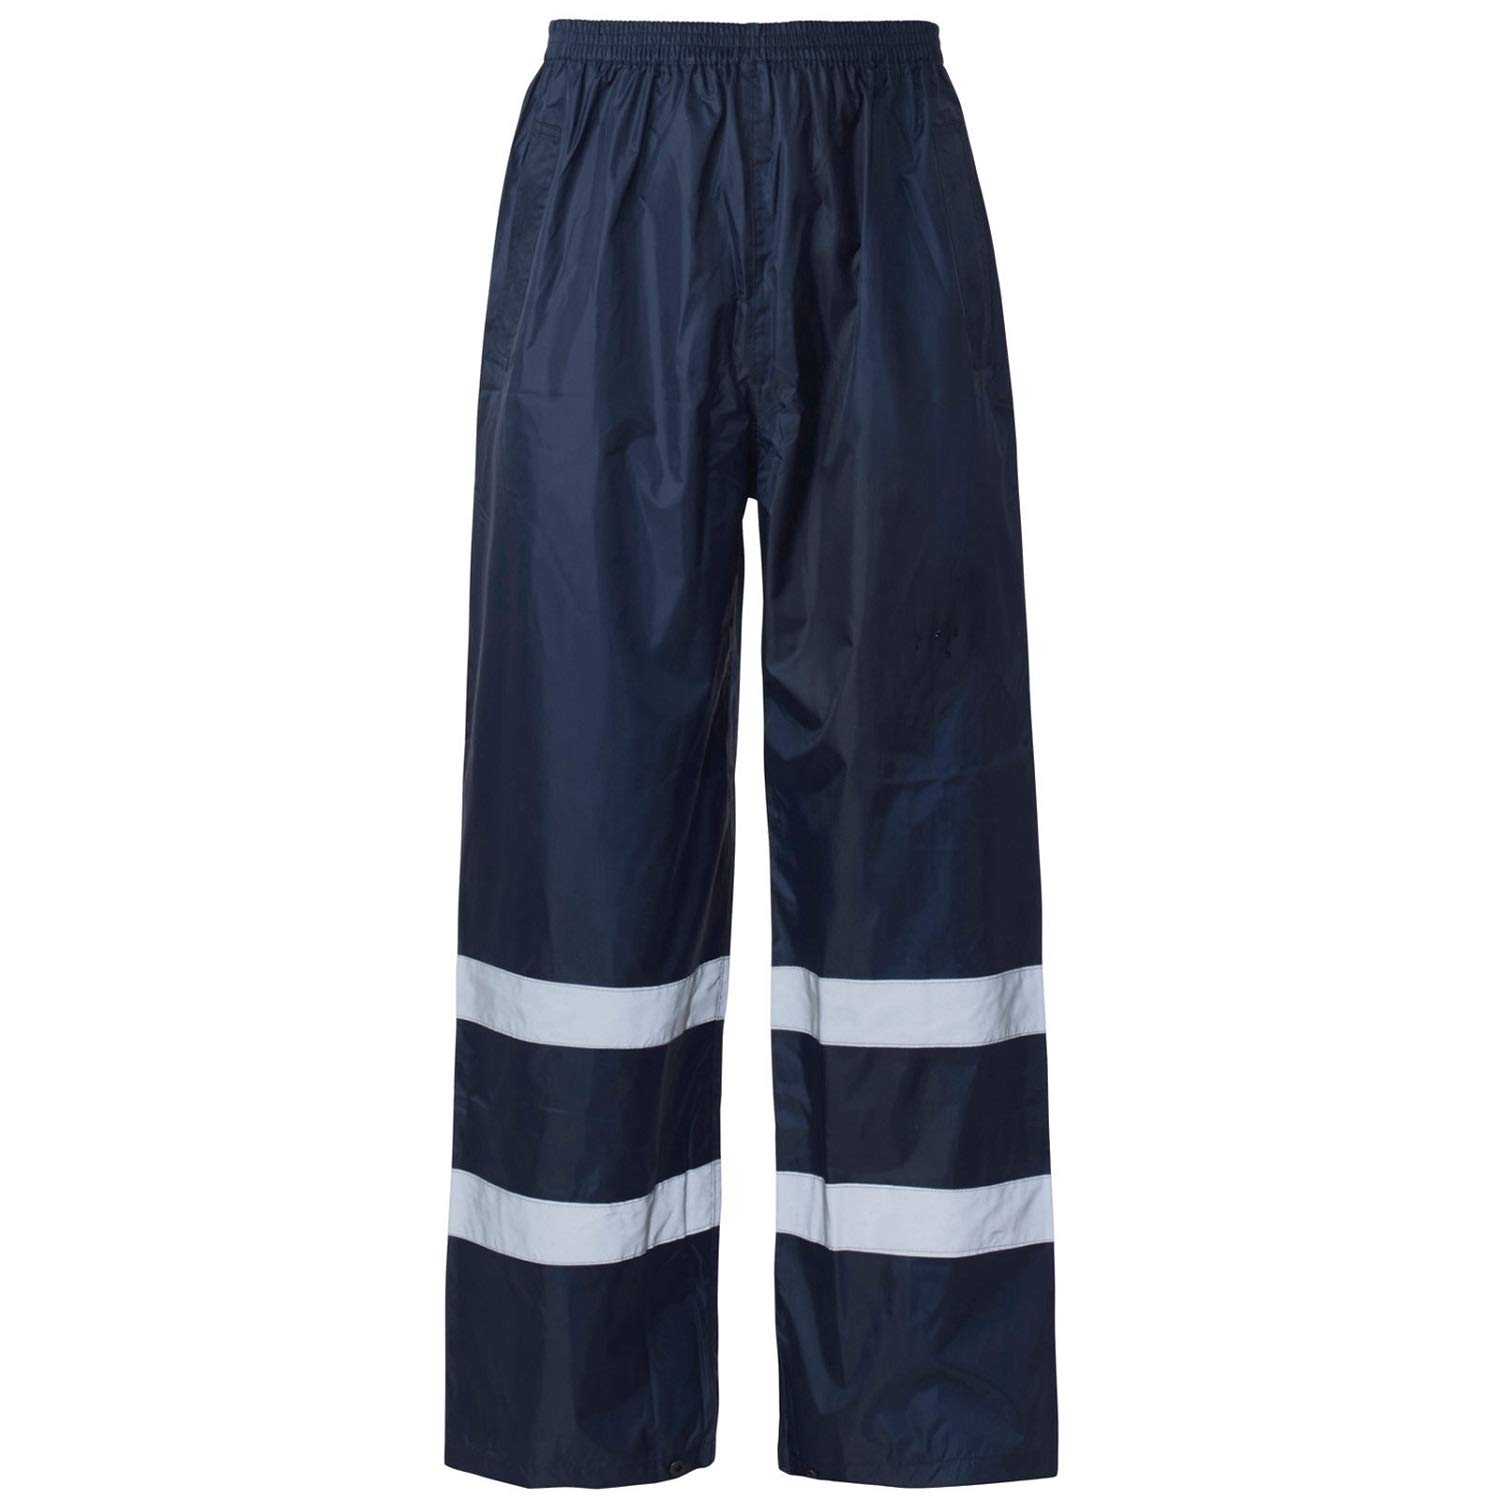 Waterproof Pant Size S REFELECTIVE Safety Work WEAR 100/% Polyester 5XL Style spot HI VIS Visibility VIZ Over Trousers